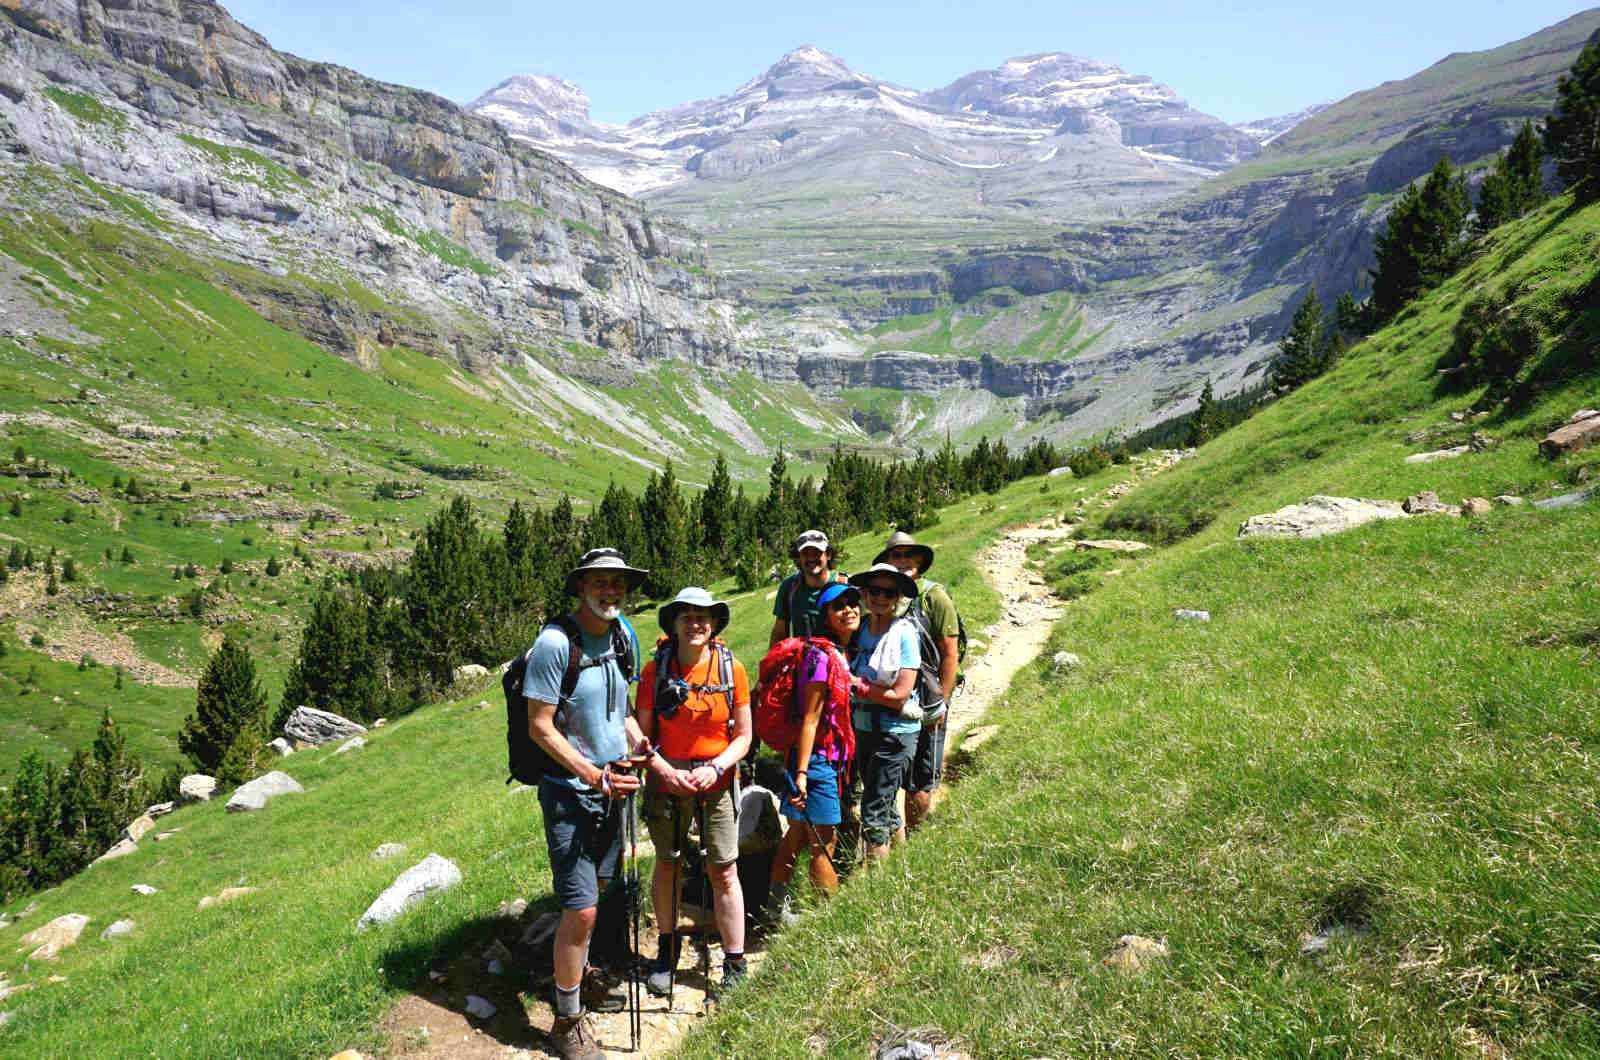 A photo of a group of hikers on a narrow path high in the ordesa valley with Monte Pedido in the background on our Guided Walking Holiday Spain